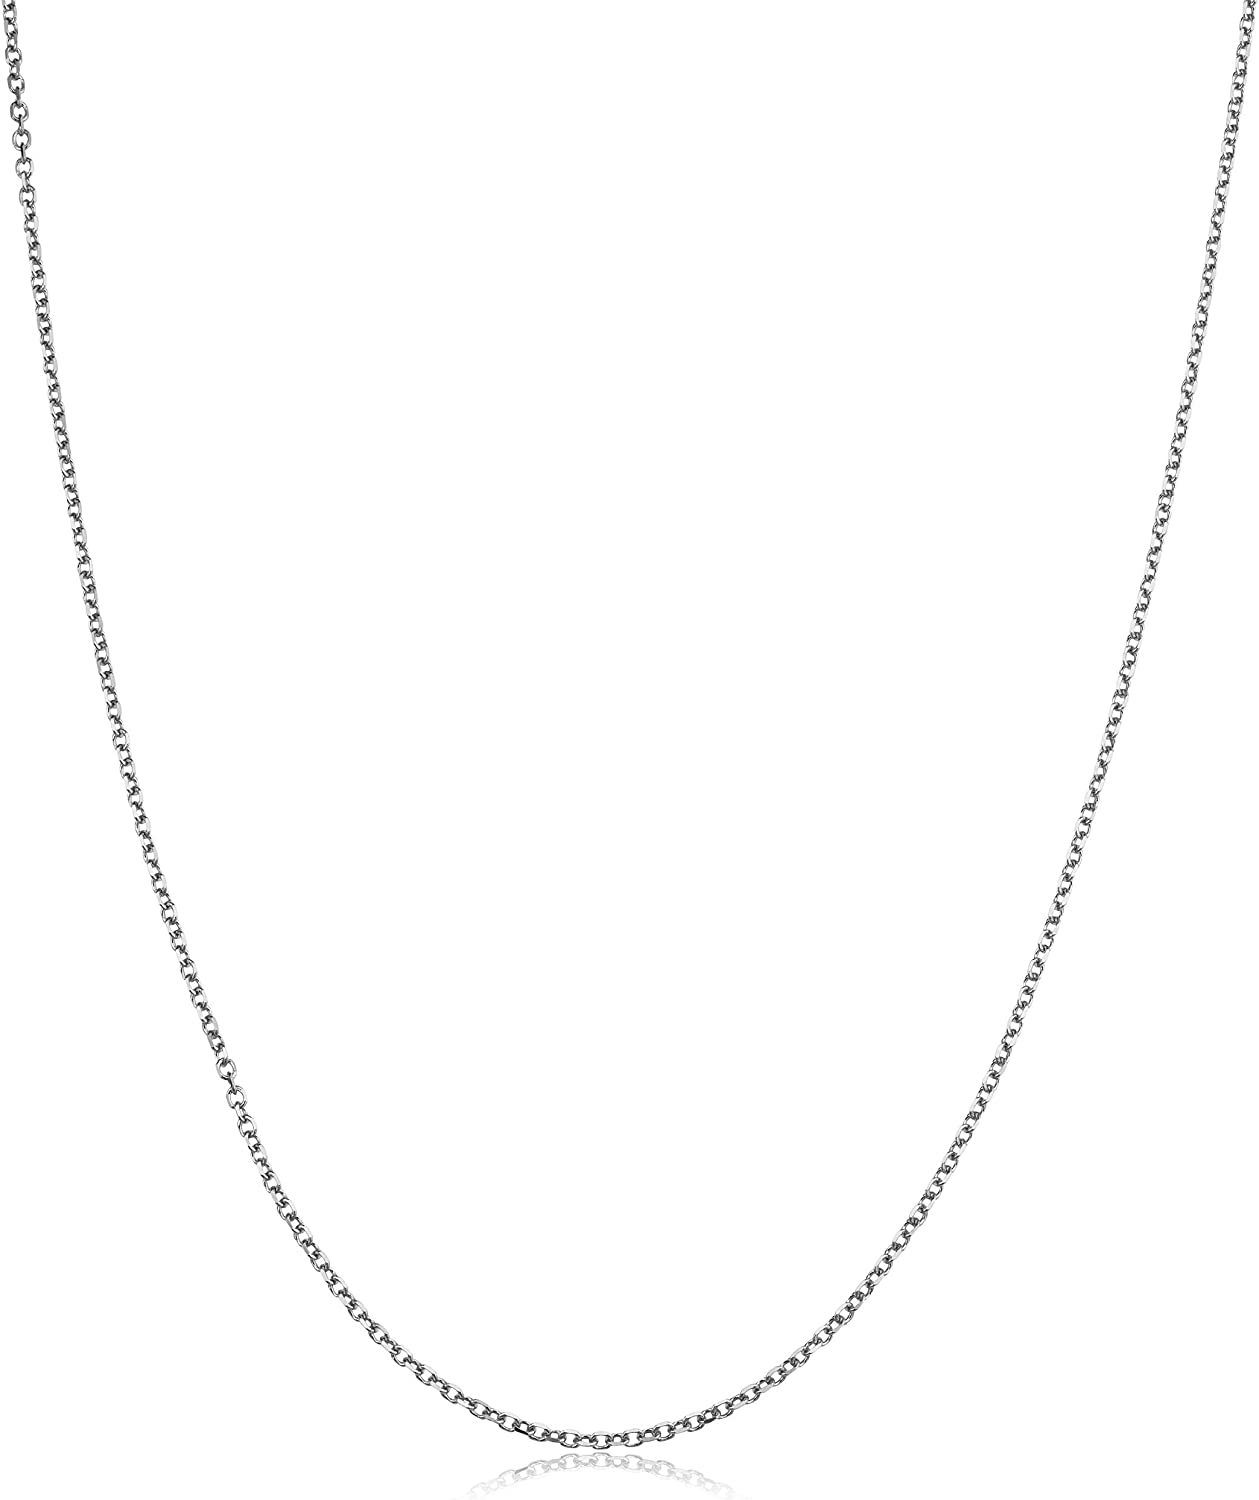 Kooljewelry Solid 14k White Gold 1.1 mm Diamond-Cut Cable Chain Necklace (18, 20, or 24 inch)